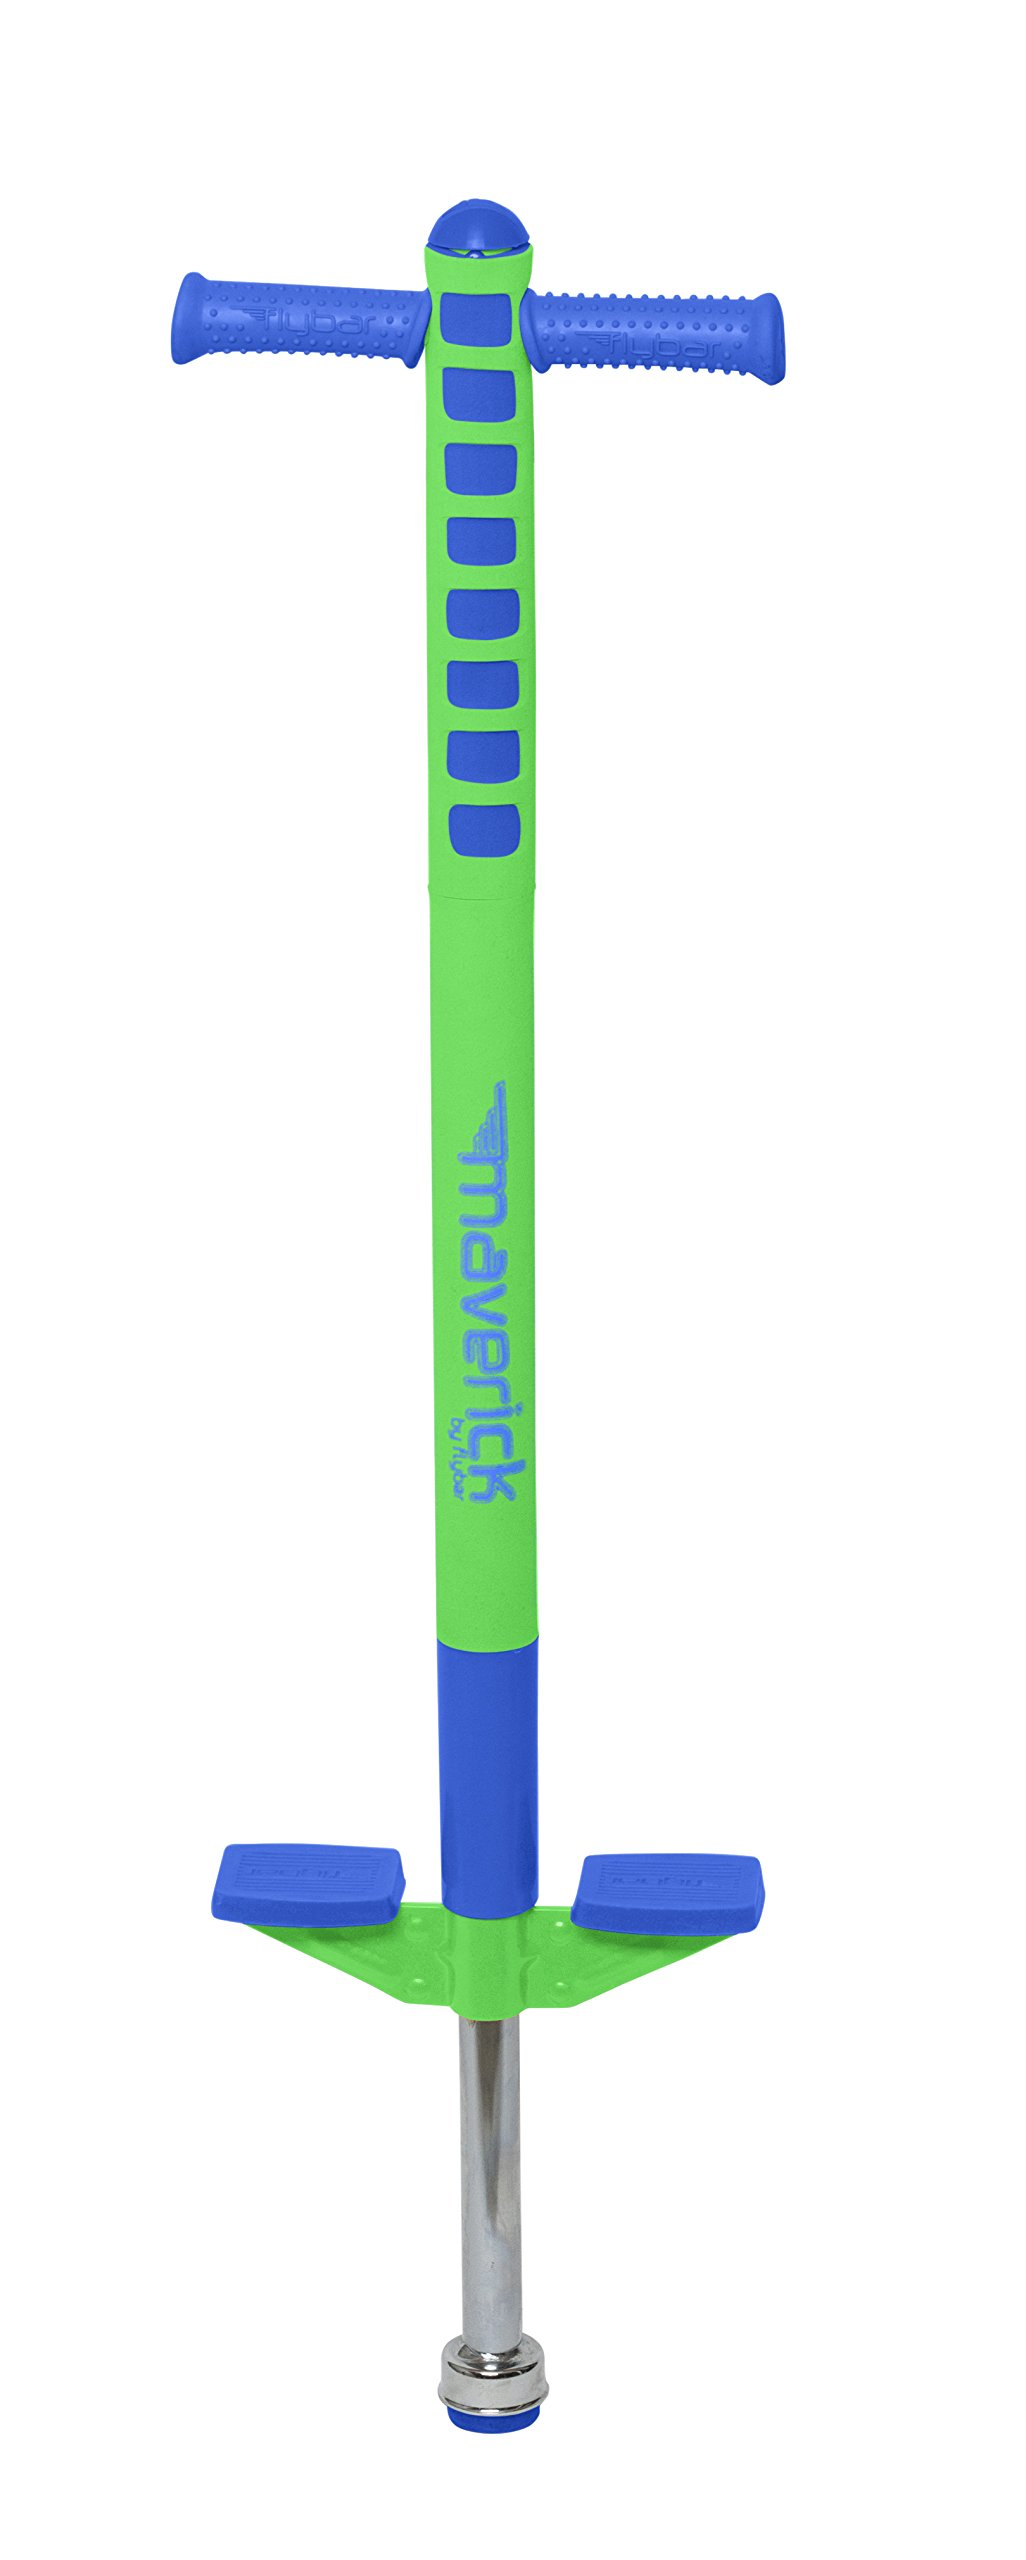 Flybar Limited Edition Foam Maverick Pogo Stick for Boys & Girls | Indoor/Outdoor Toy for Kids Ages 5-9 | Features NEW 'Rubber' Grip Handles | Non-Slip Foot Pegs for Safety - (Blue/Lime, 1 Pack) by Flybar